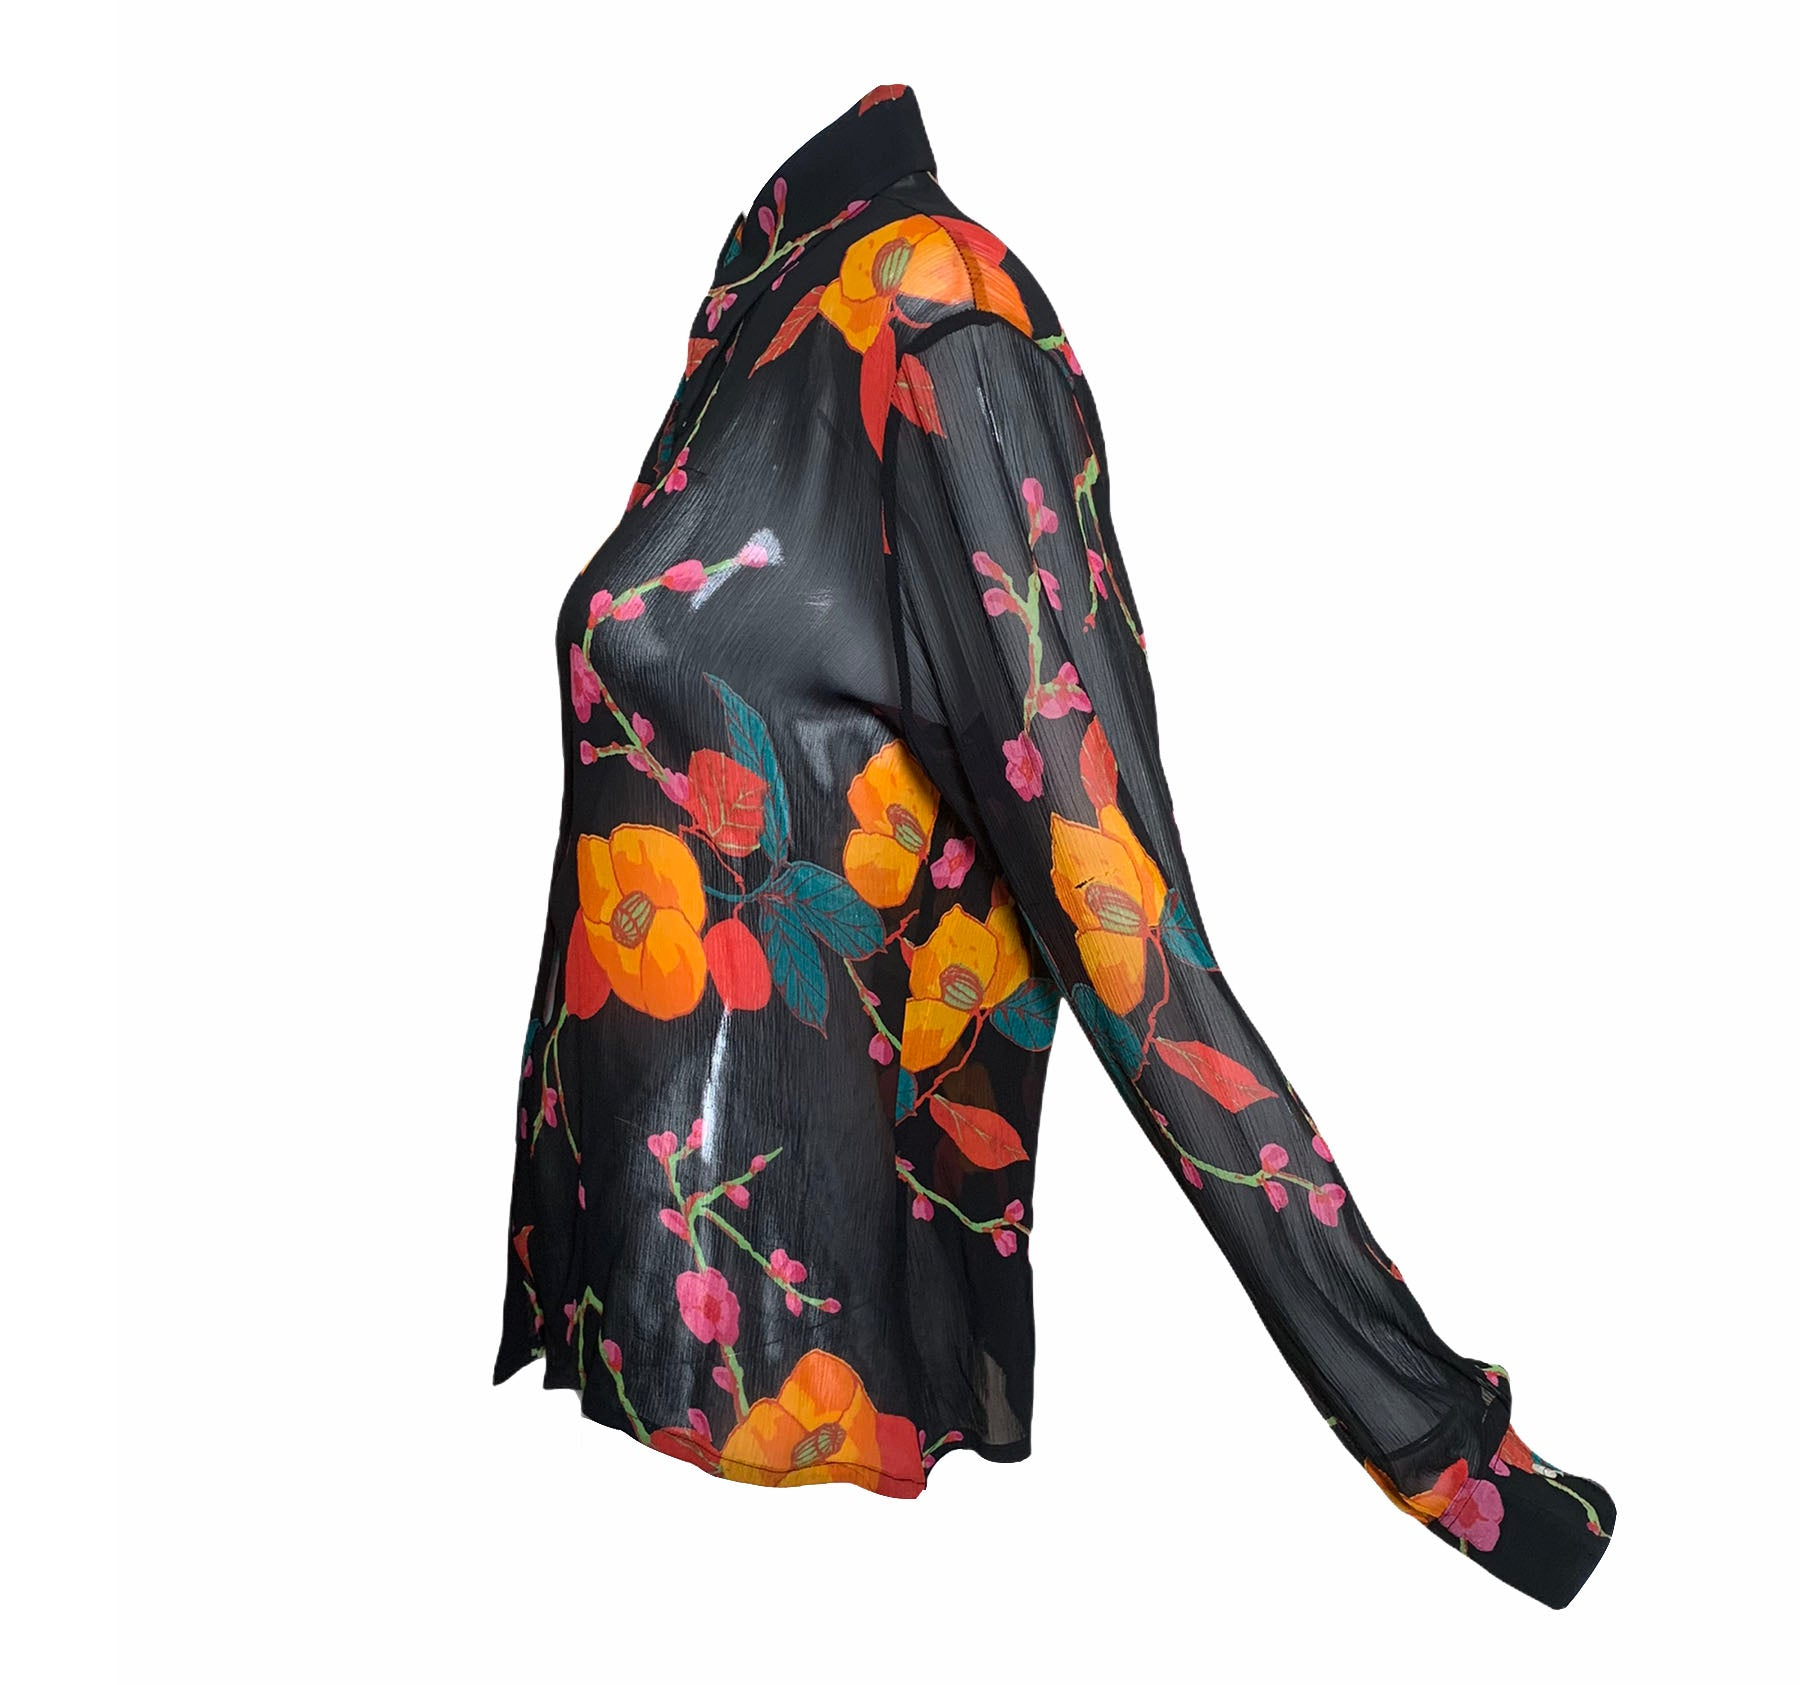 Franck Olivier Black Floral Chiffon Blouse SIDE 2 of 5